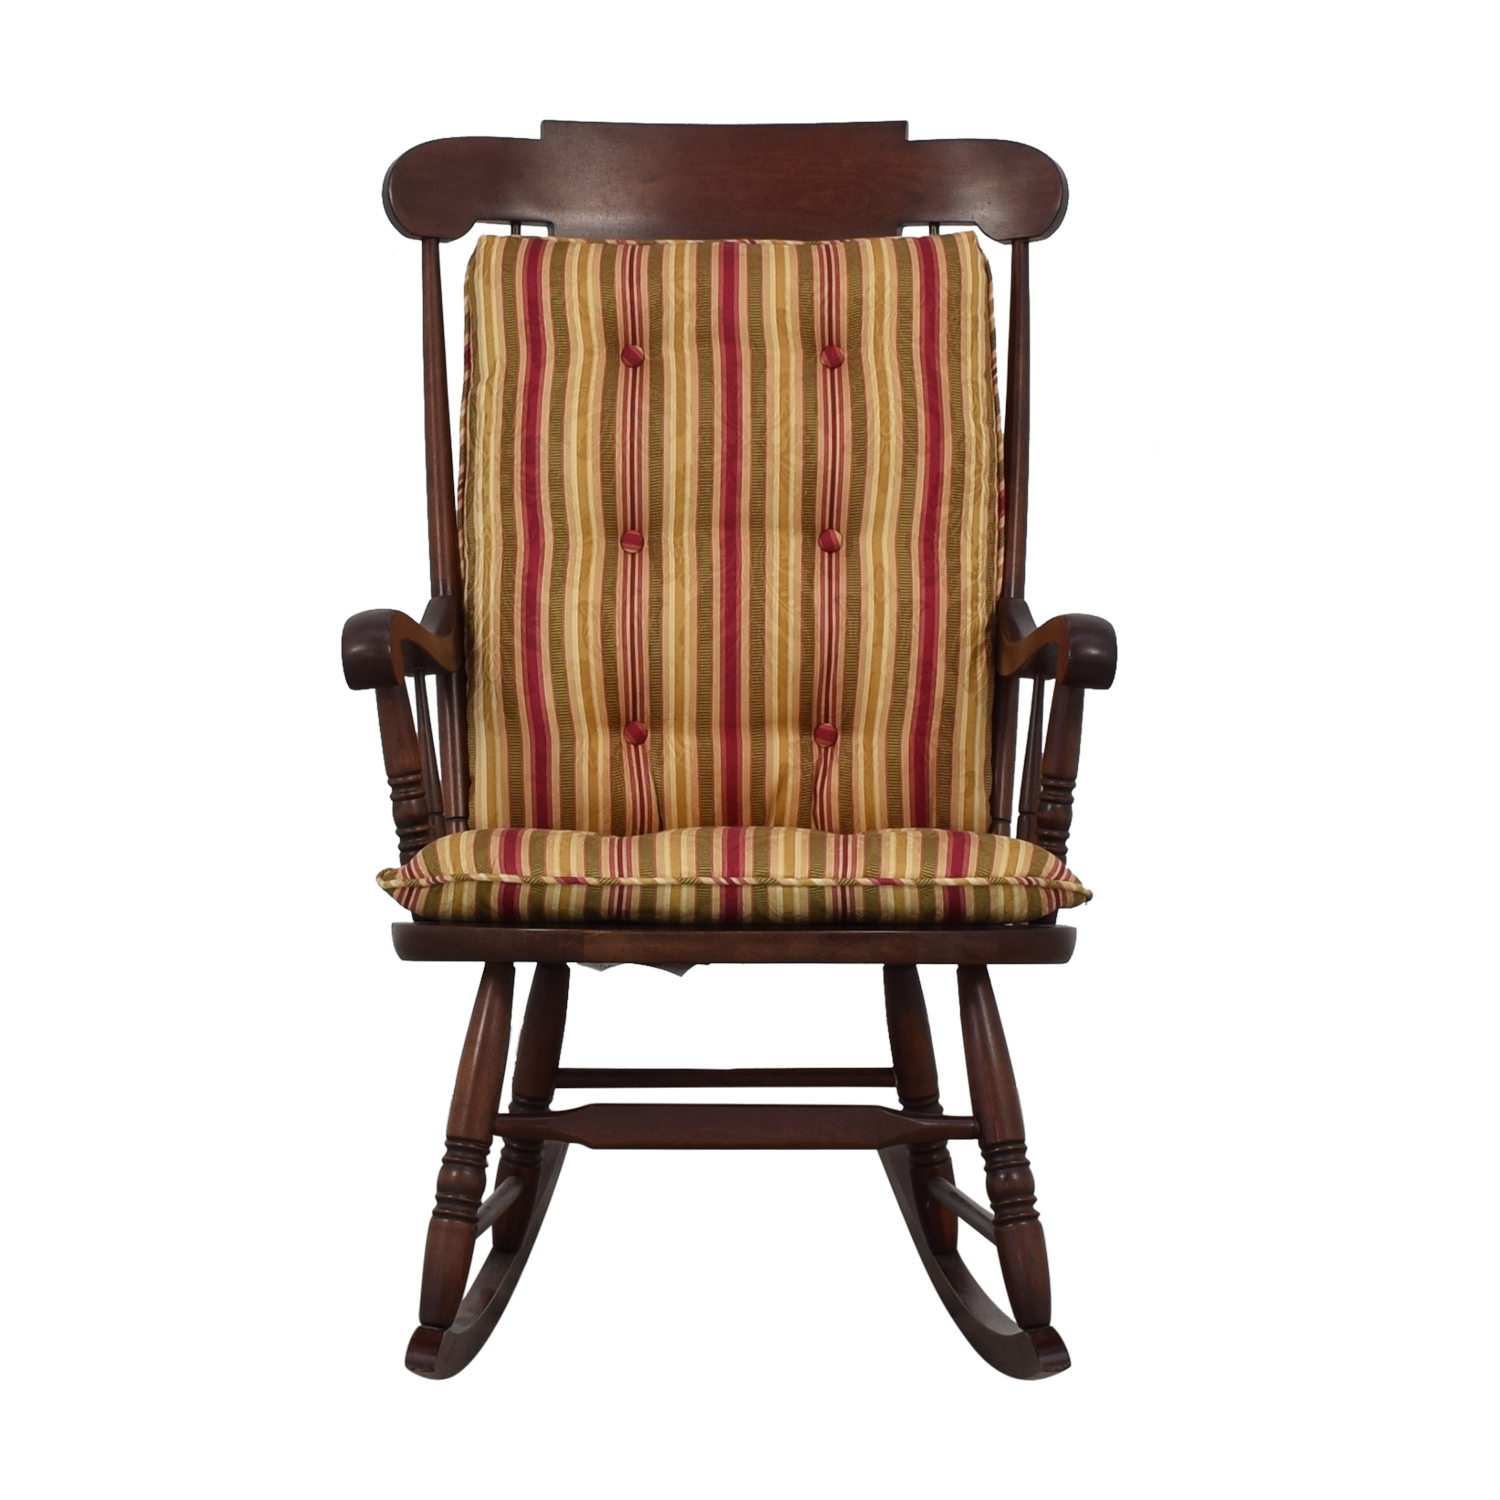 Awesome 82 Off Hitchcock Hitchcock Wooden Rocking Chair Chairs Machost Co Dining Chair Design Ideas Machostcouk